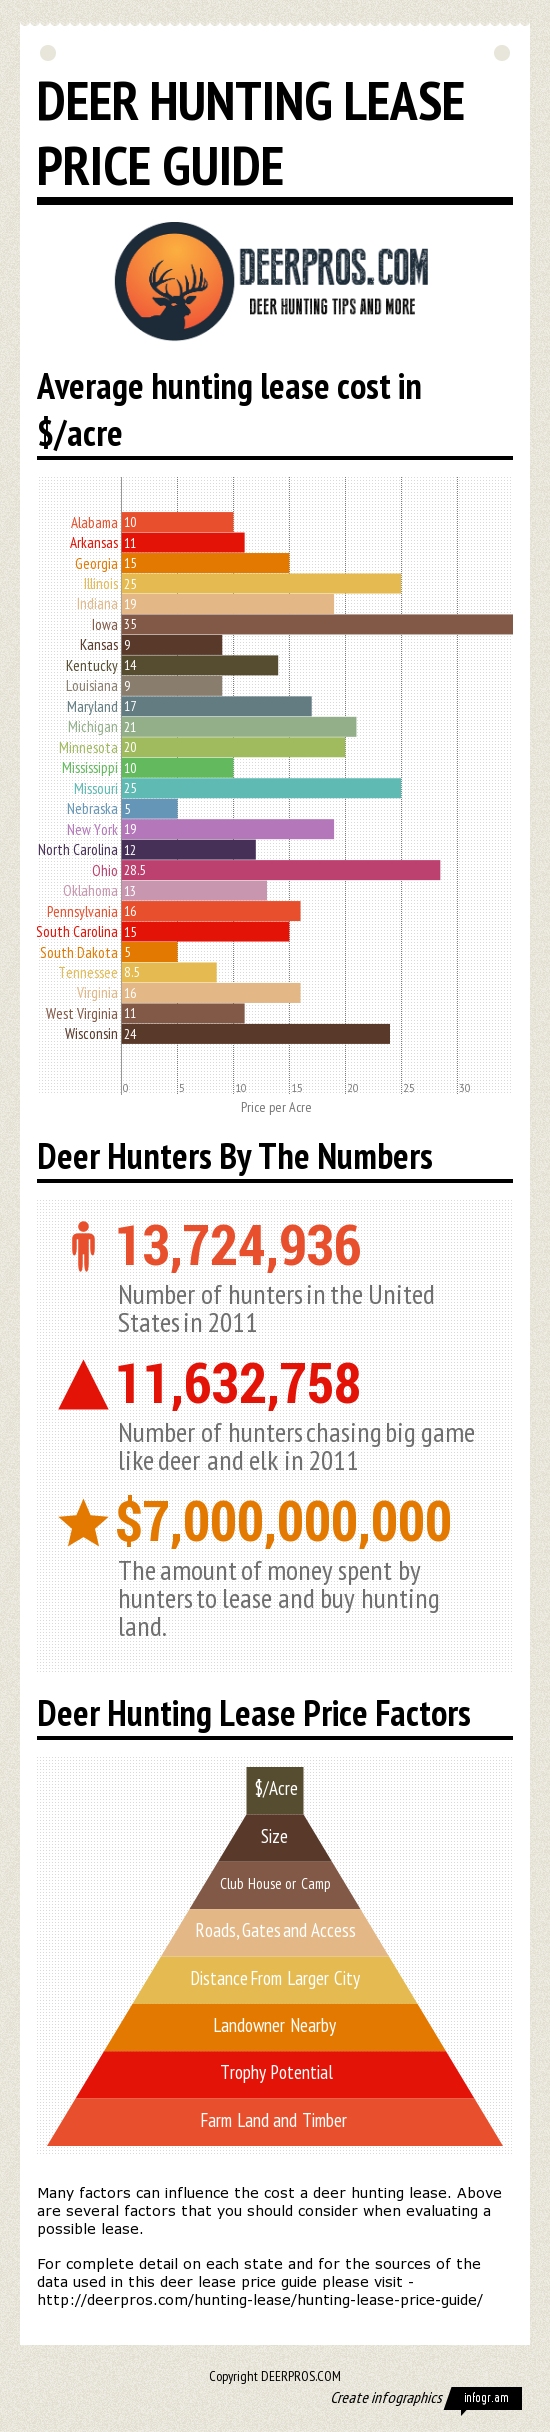 You Can't Have Your Deer Hunting and Watch It, Too